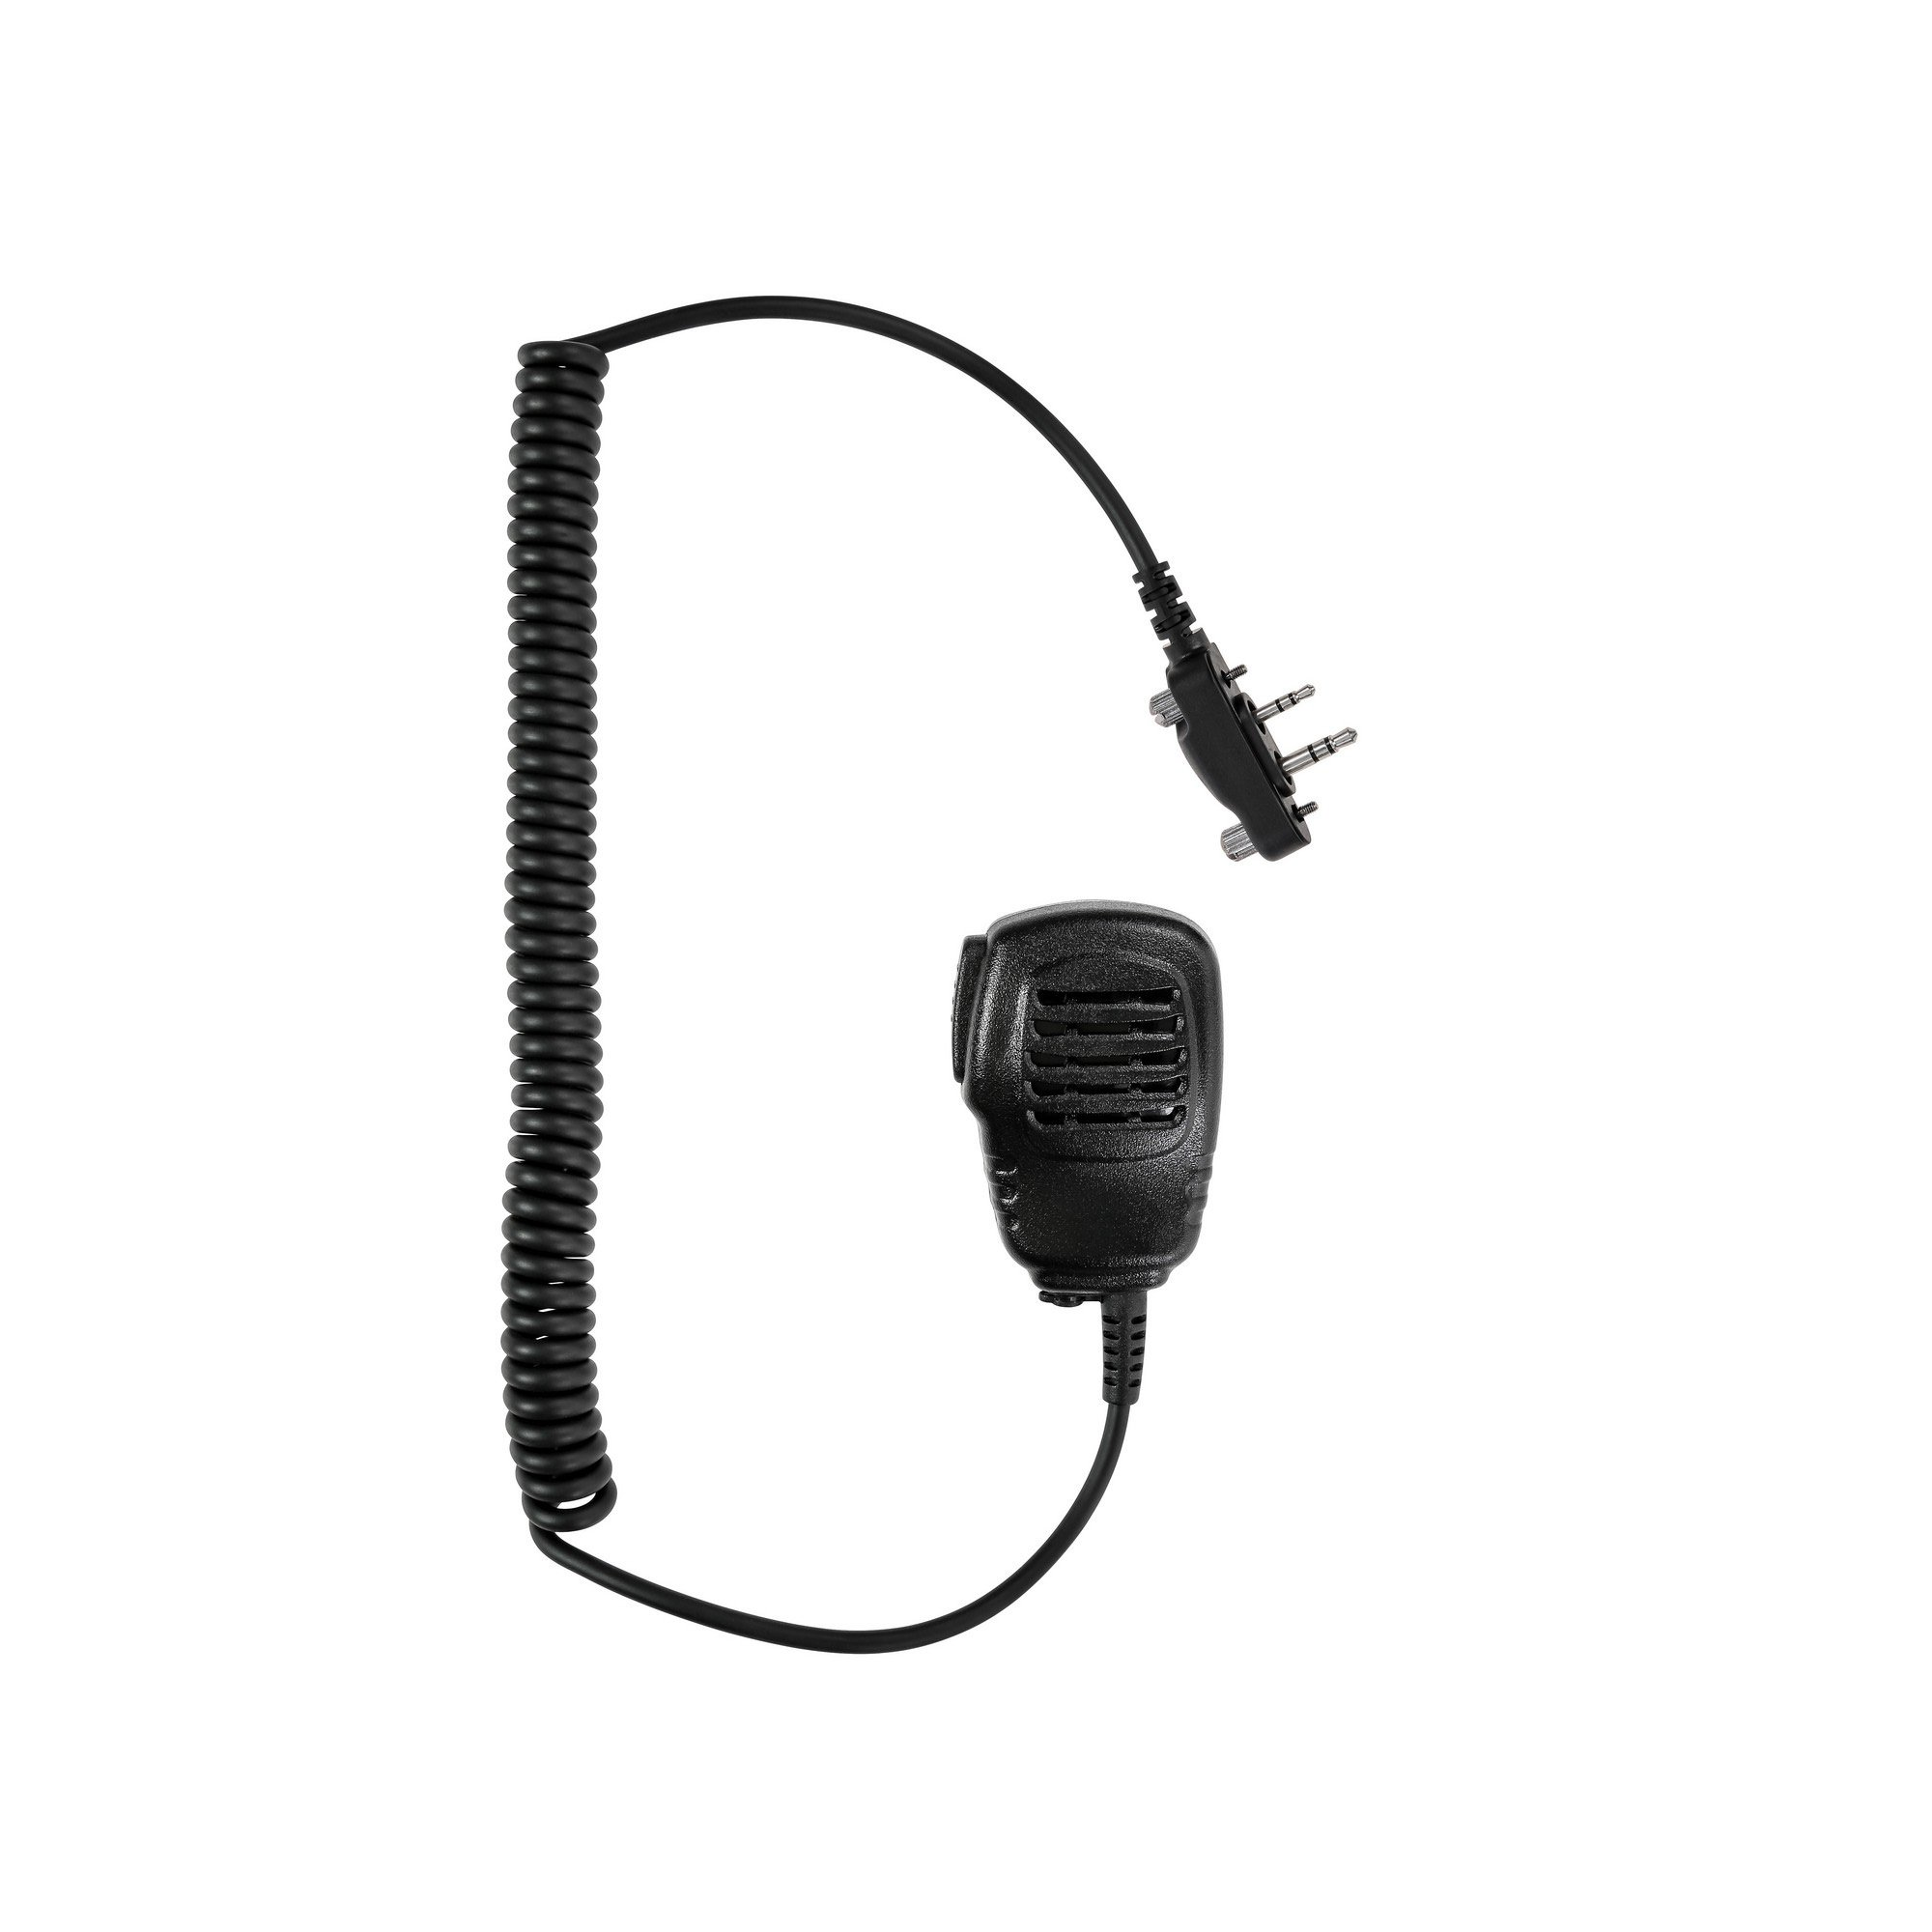 Maxtop APM100-I2 Light Duty Shoulder Speaker Microphone for ICOM IC-F3011 IC-F4011 IC-F3021 IC-F4021 IC-F3062